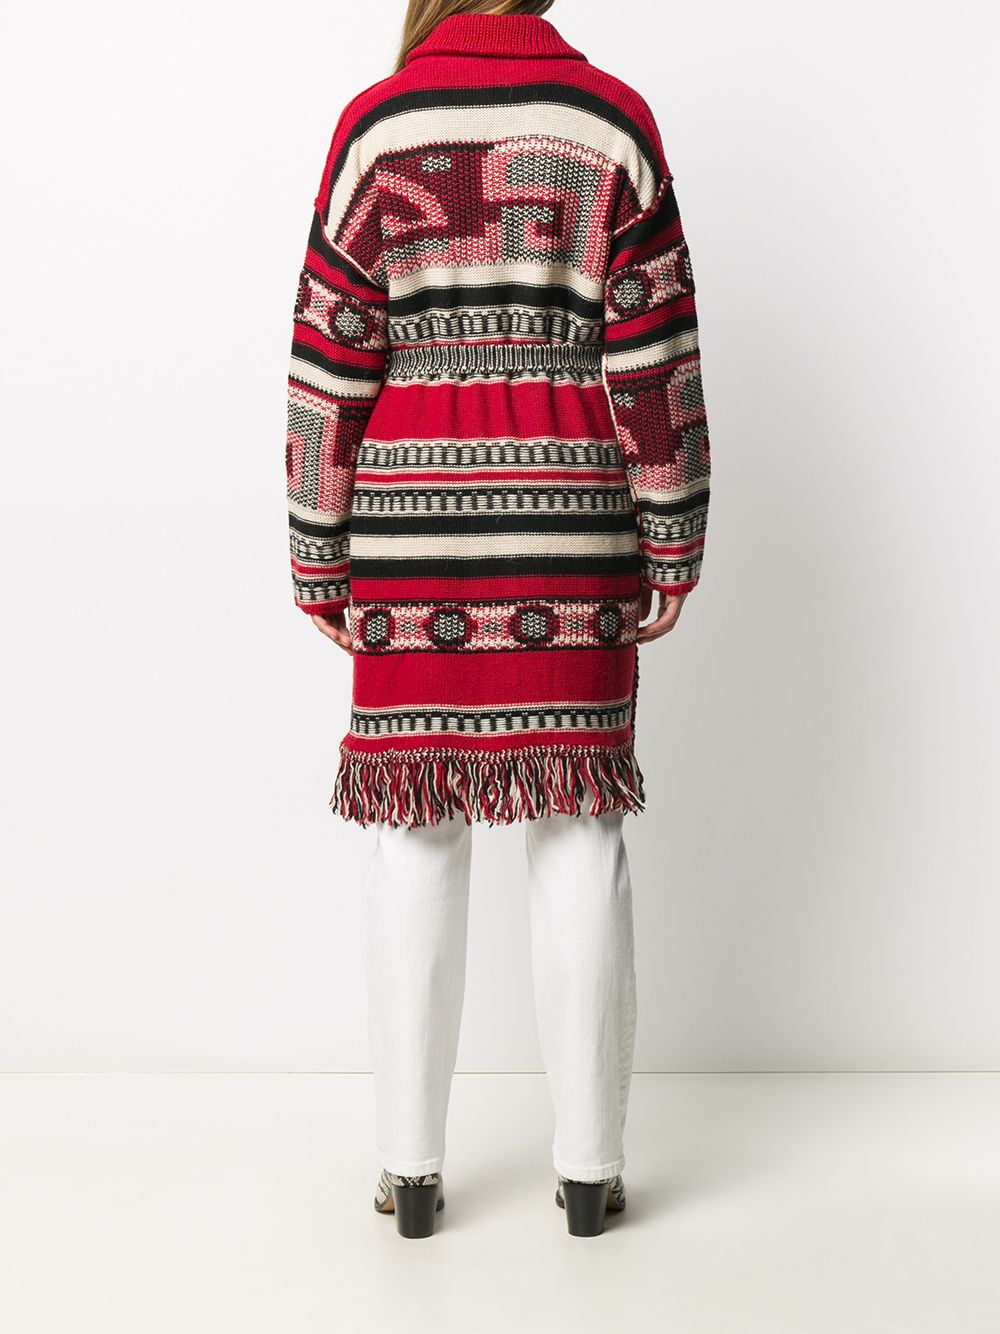 long wool fringed red multicolor cardigan with hips belt  GGDB |  | GWP00238-P00022080461